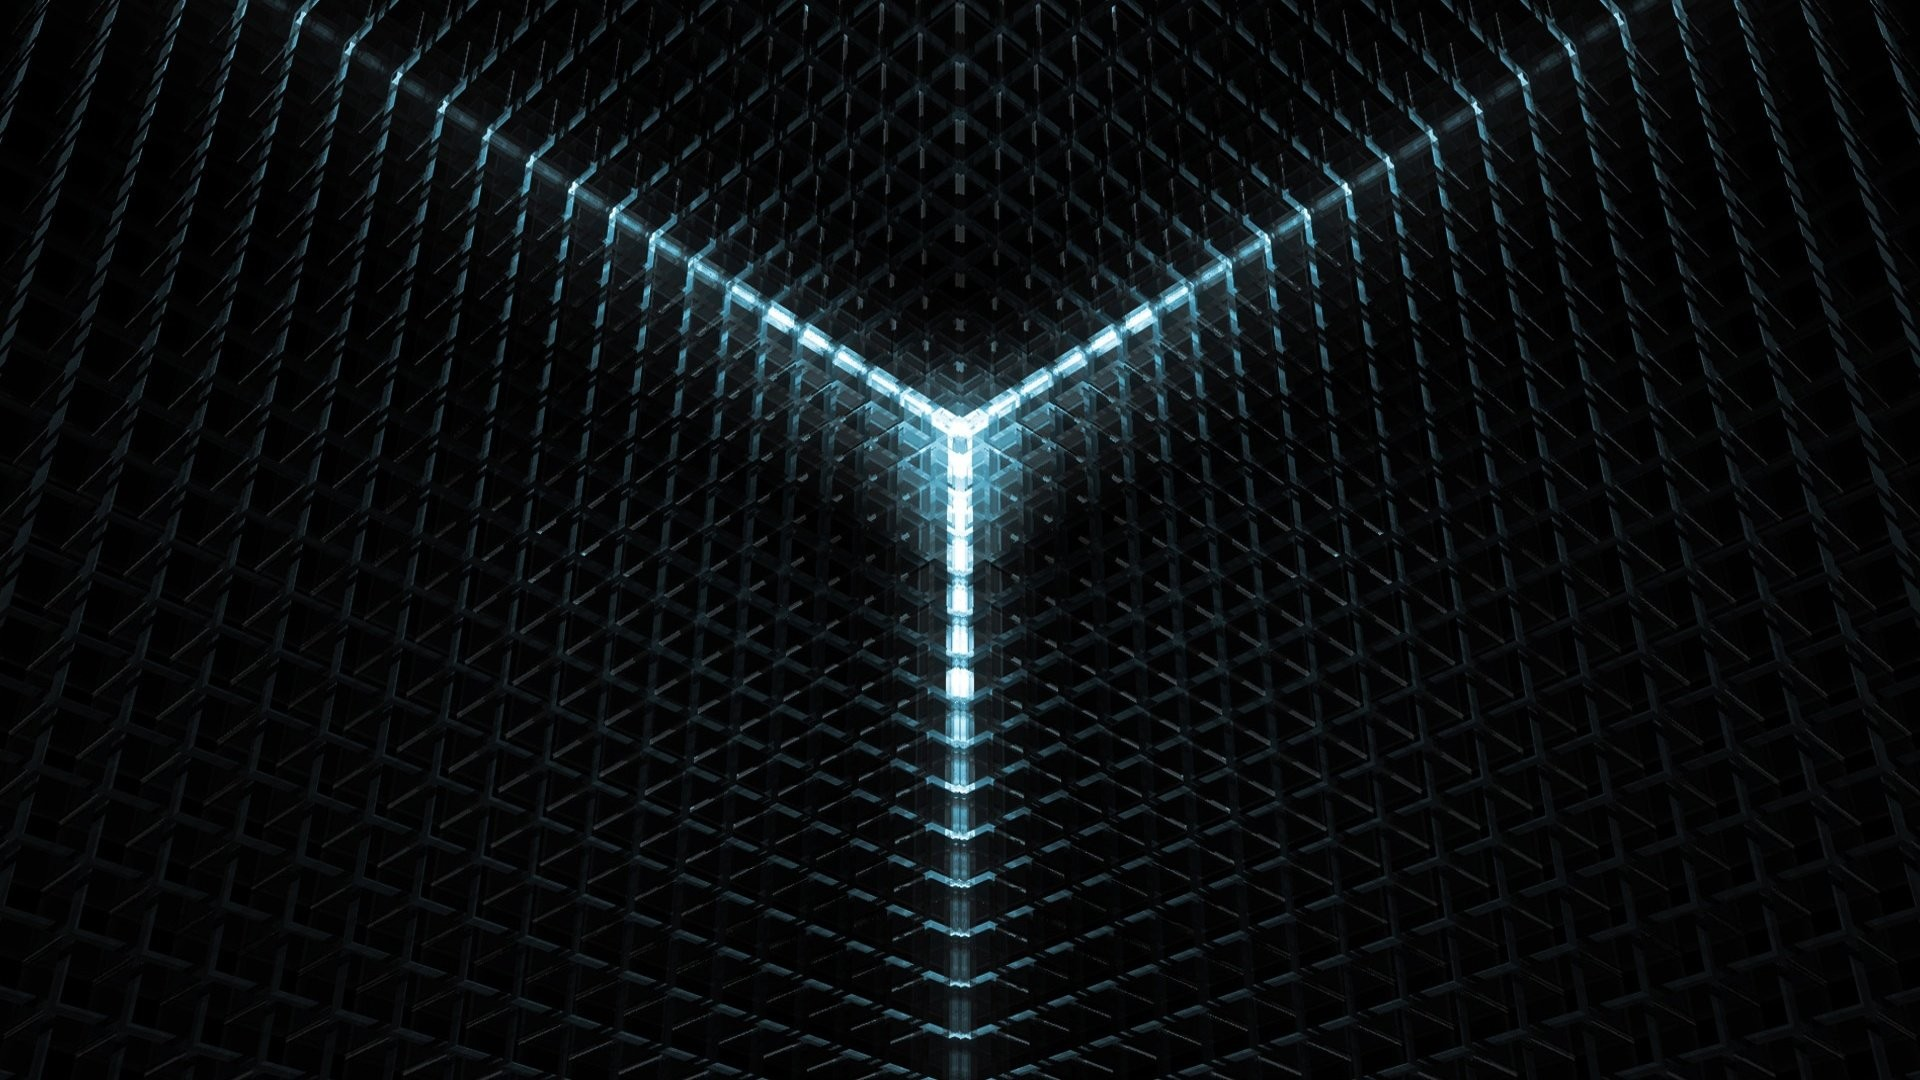 Trippy Wallpapers, Pictures, Images